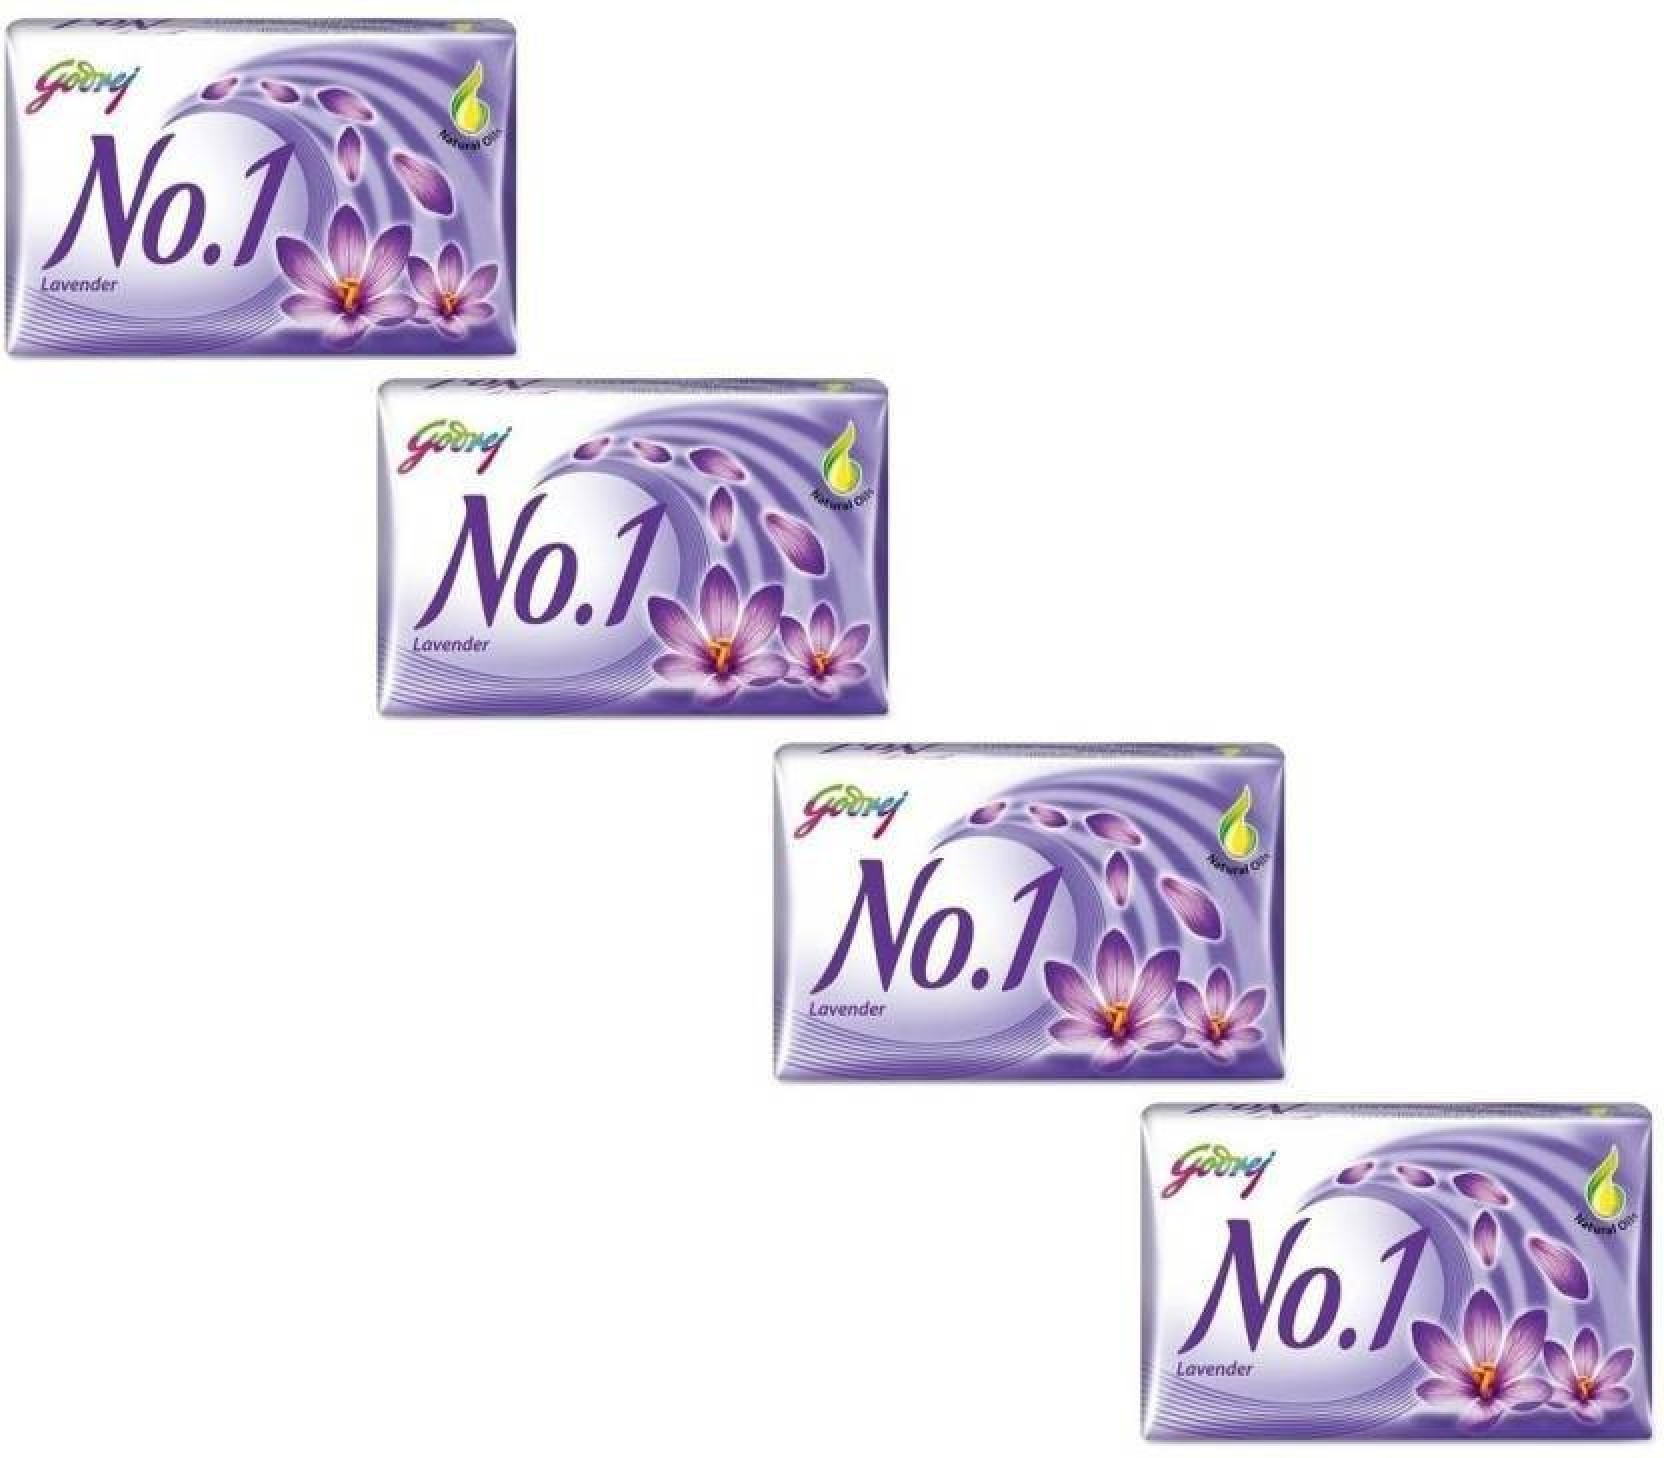 Godrej No 1 Lavender Soap Pack Of 4 Price In India Buy Cussons Baby Purple Bag Complete Care Set Share